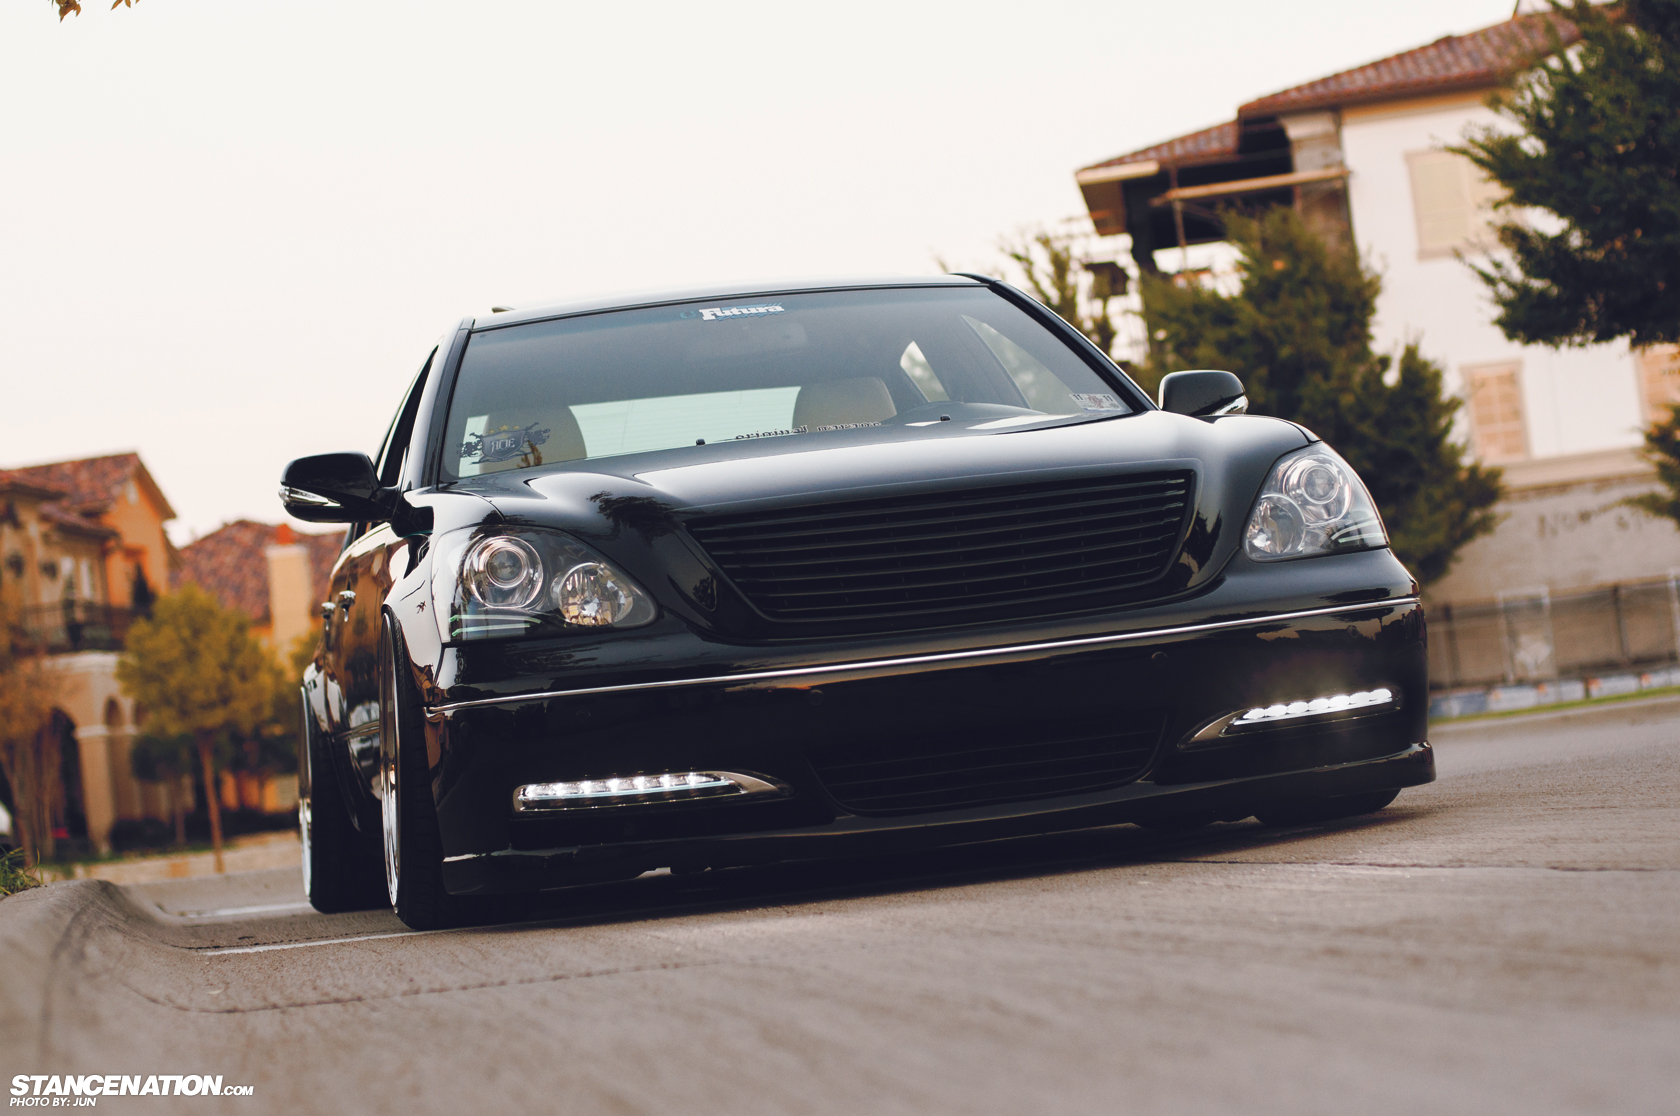 http://www.stancenation.com/wp-content/uploads/2012/11/244.jpg